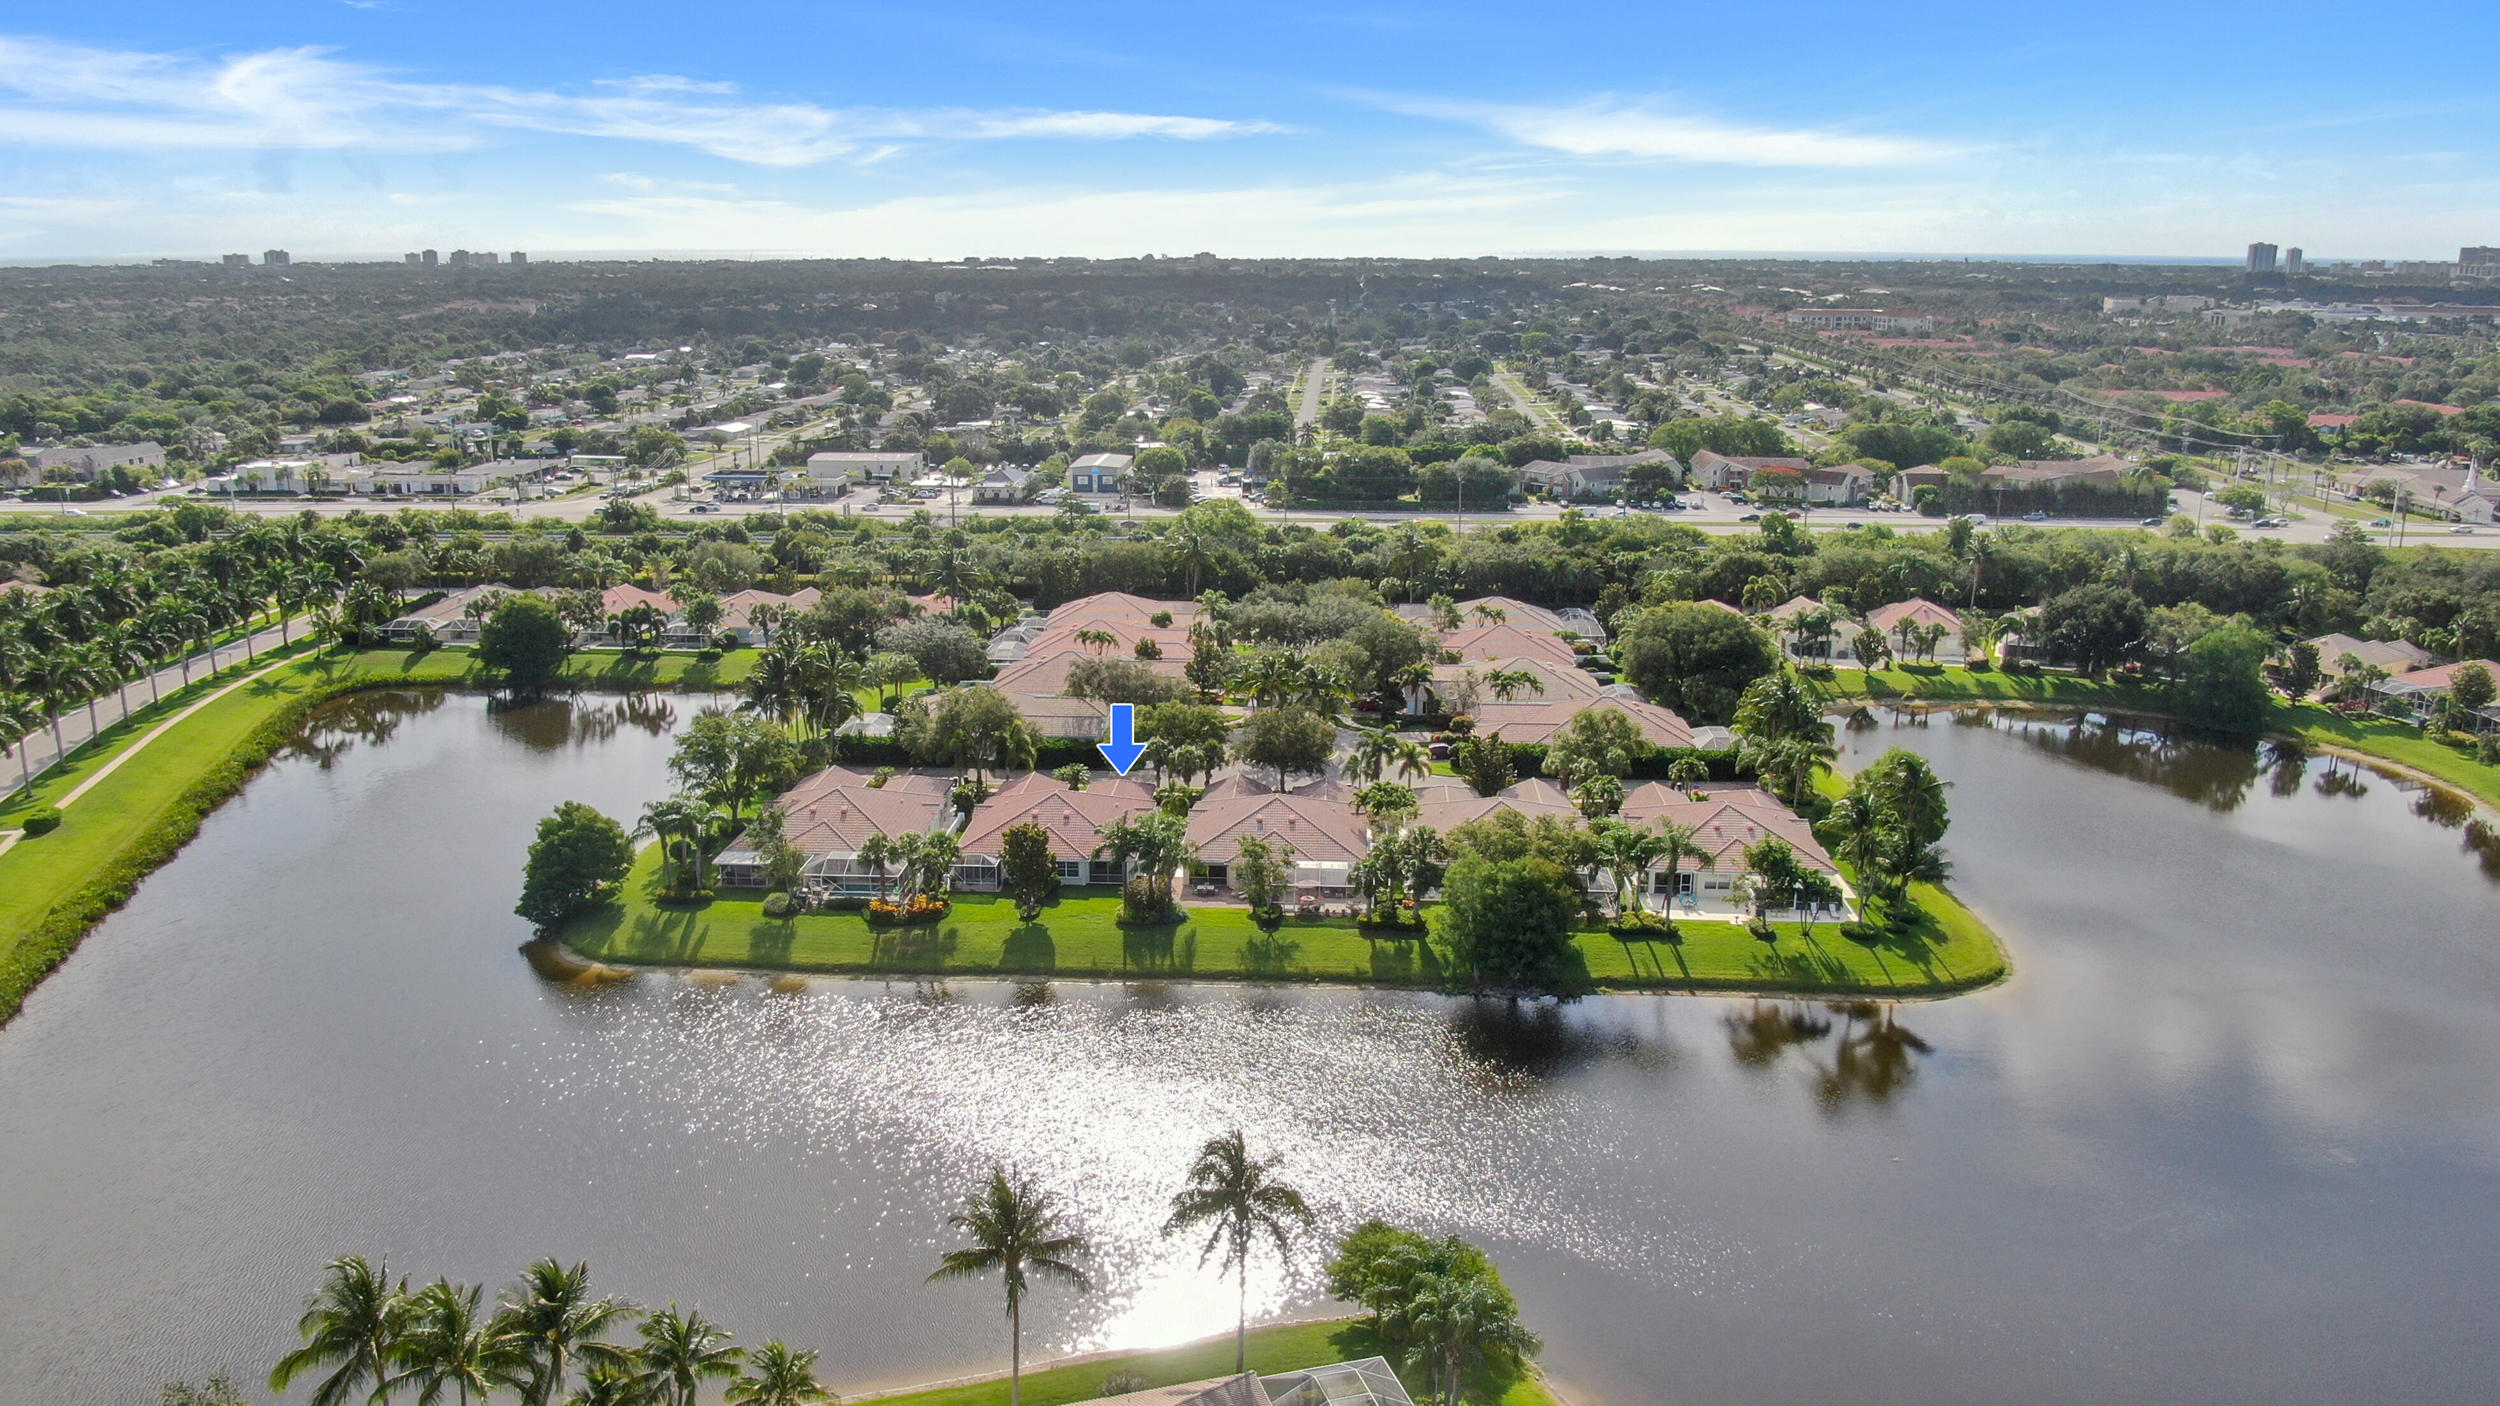 Move into this beautiful light & bright capri model on the quiet street of Magdalena in the Isles of Palm Beach Gardens. Expansive lake views for peace & serenity. This home is conveniently located near shopping and great dining. Whether it is relaxing or being active, the Isles of Palm Beach Gardens puts you in the middle of it all.